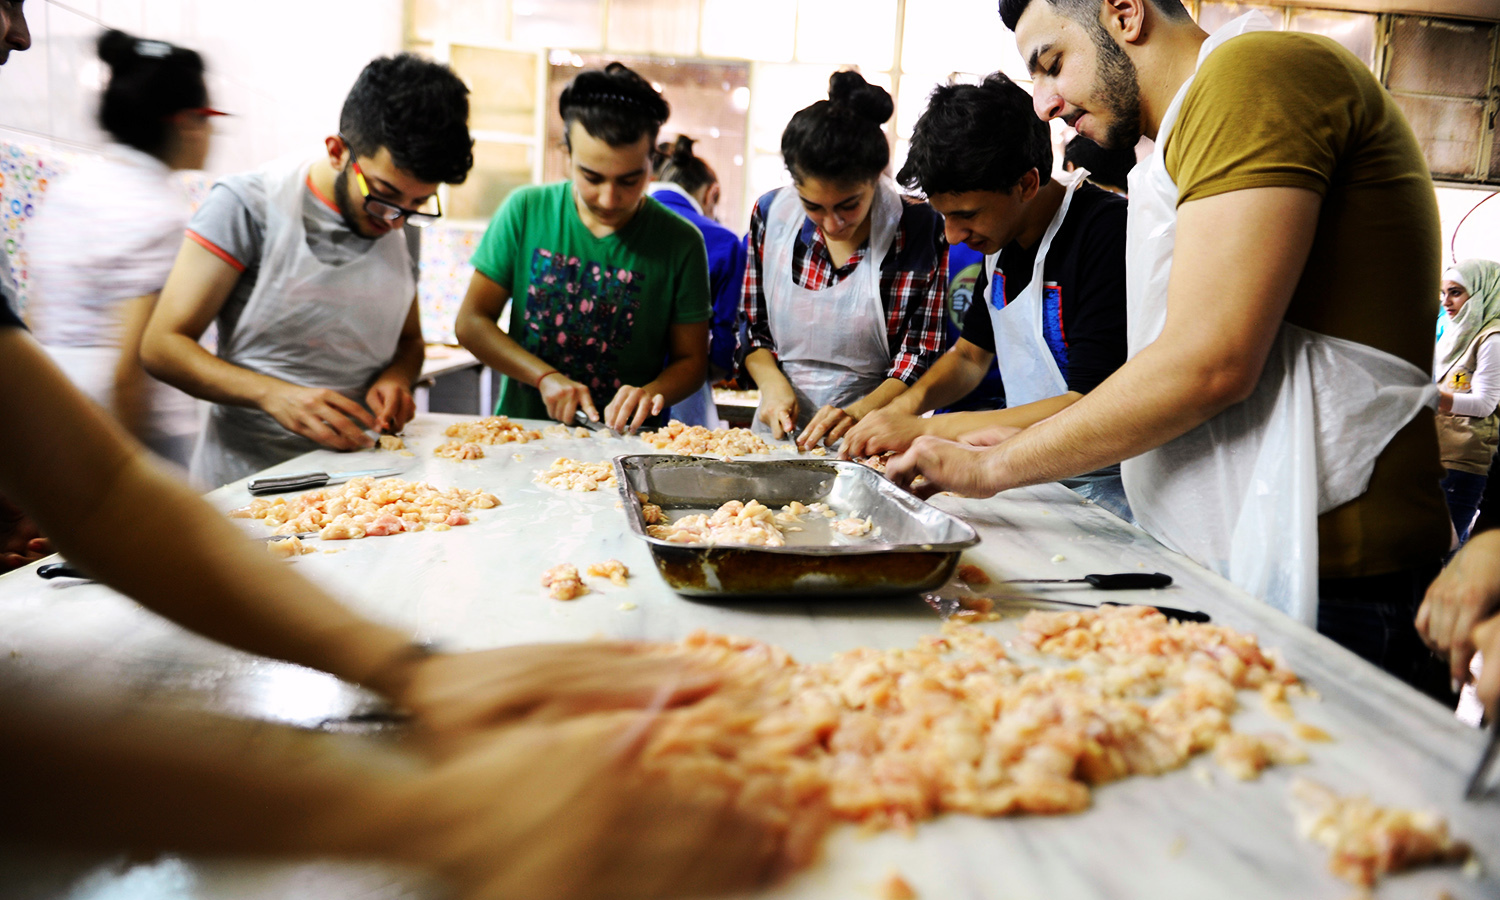 Youth, who are members of Saaed group, prepare food to be given out as Iftar meals for the poor and internally displaced Syrians during the month of Ramazan in Damascus. ─ Reuters